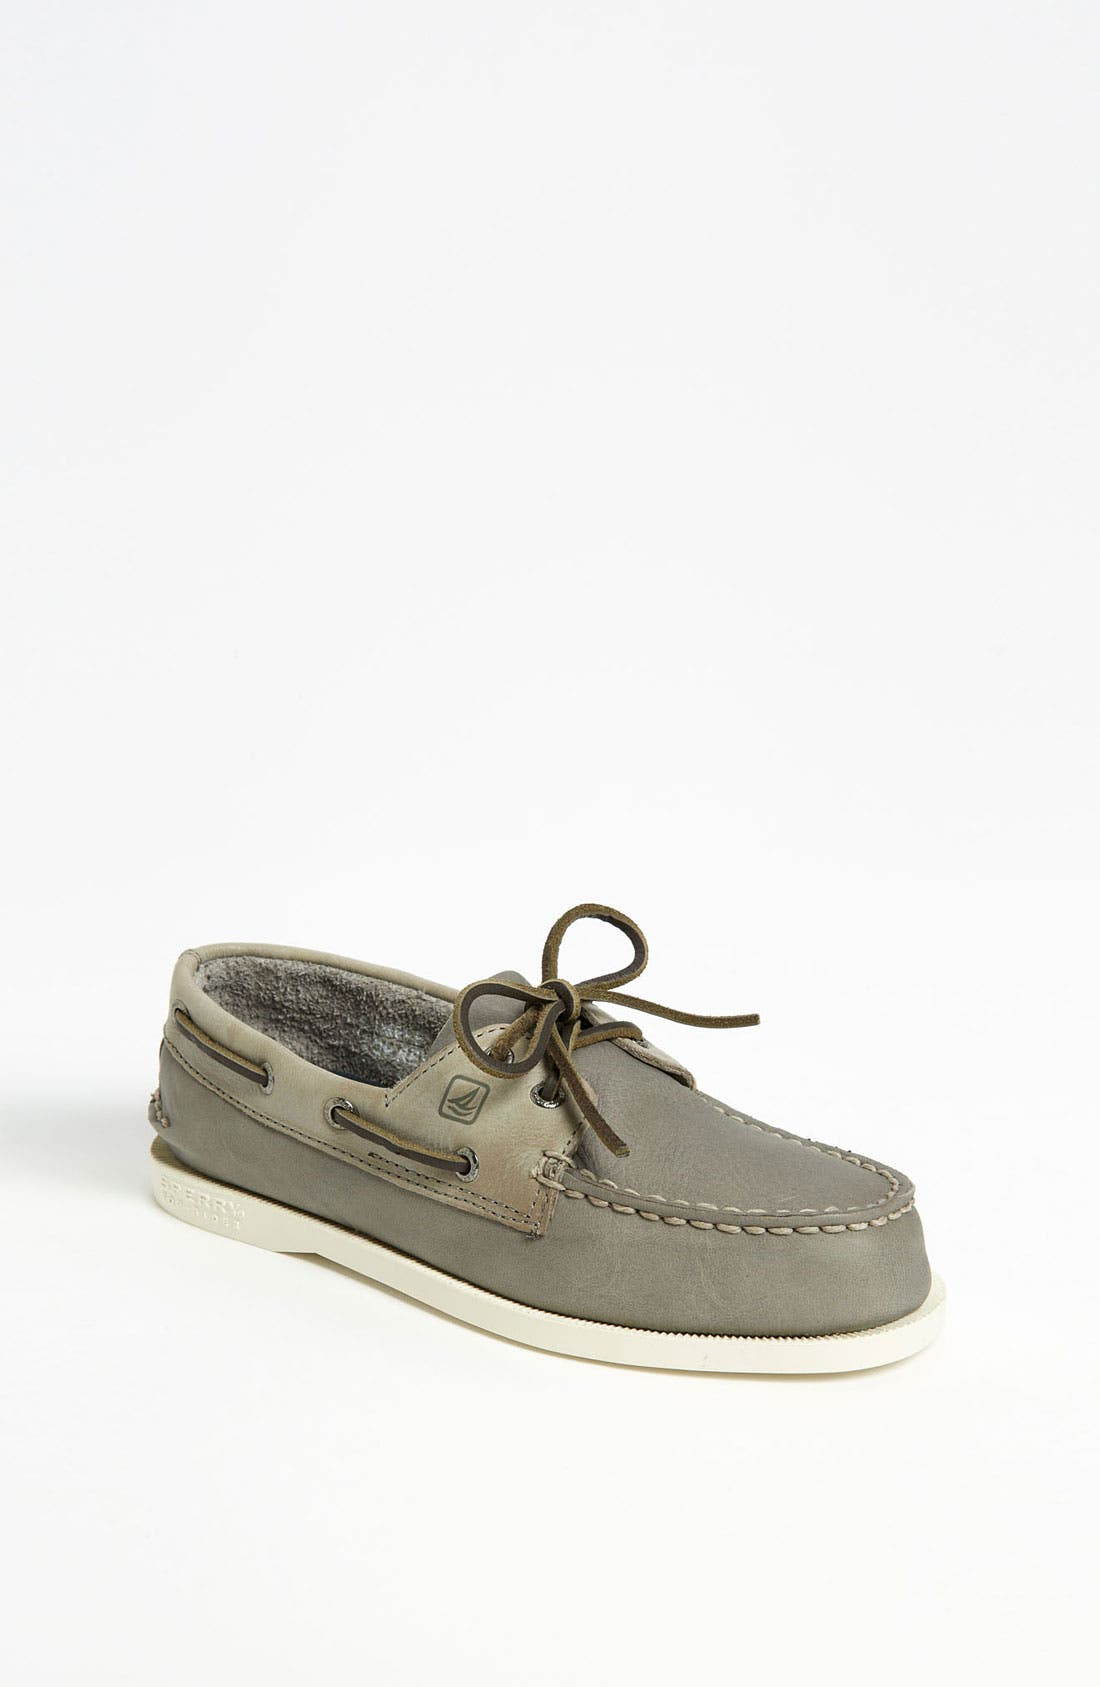 Alternate Image 1 Selected - Sperry Top-Sider® 'Authentic Original' Boat Shoe (Walker, Toddler, Little Kid & Big Kid)